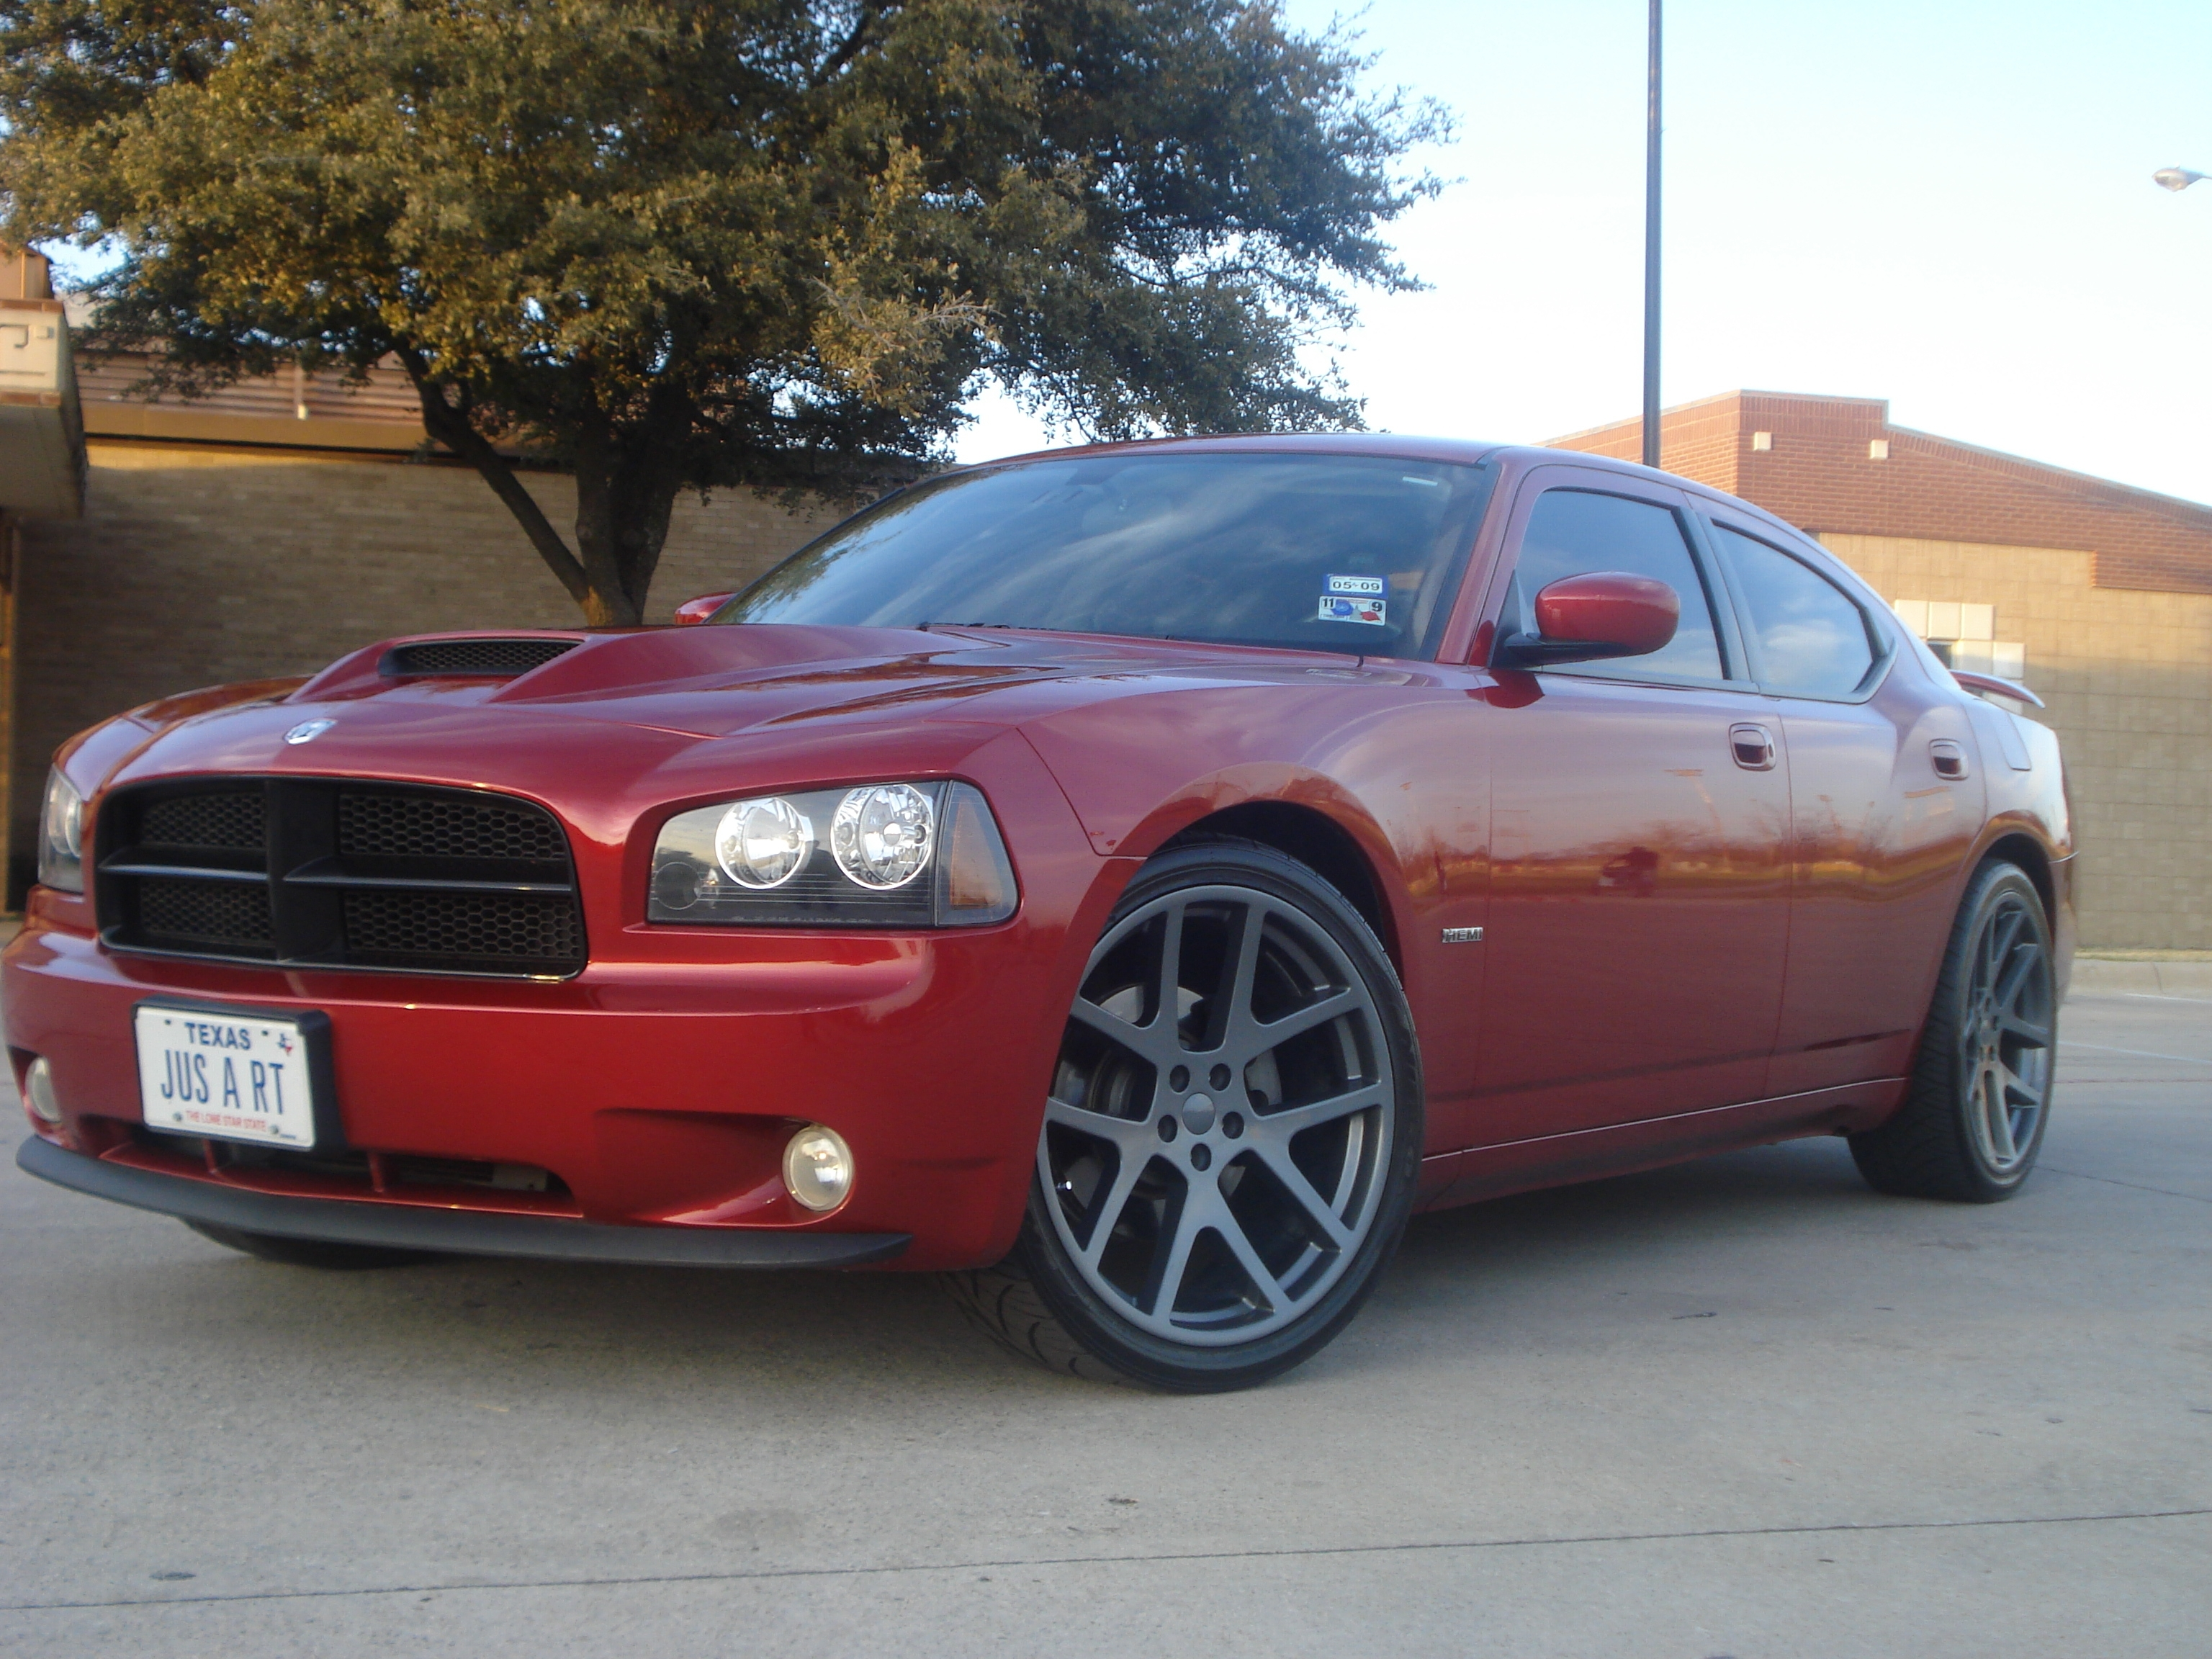 HEMICHARGED's 2006 Dodge Charger